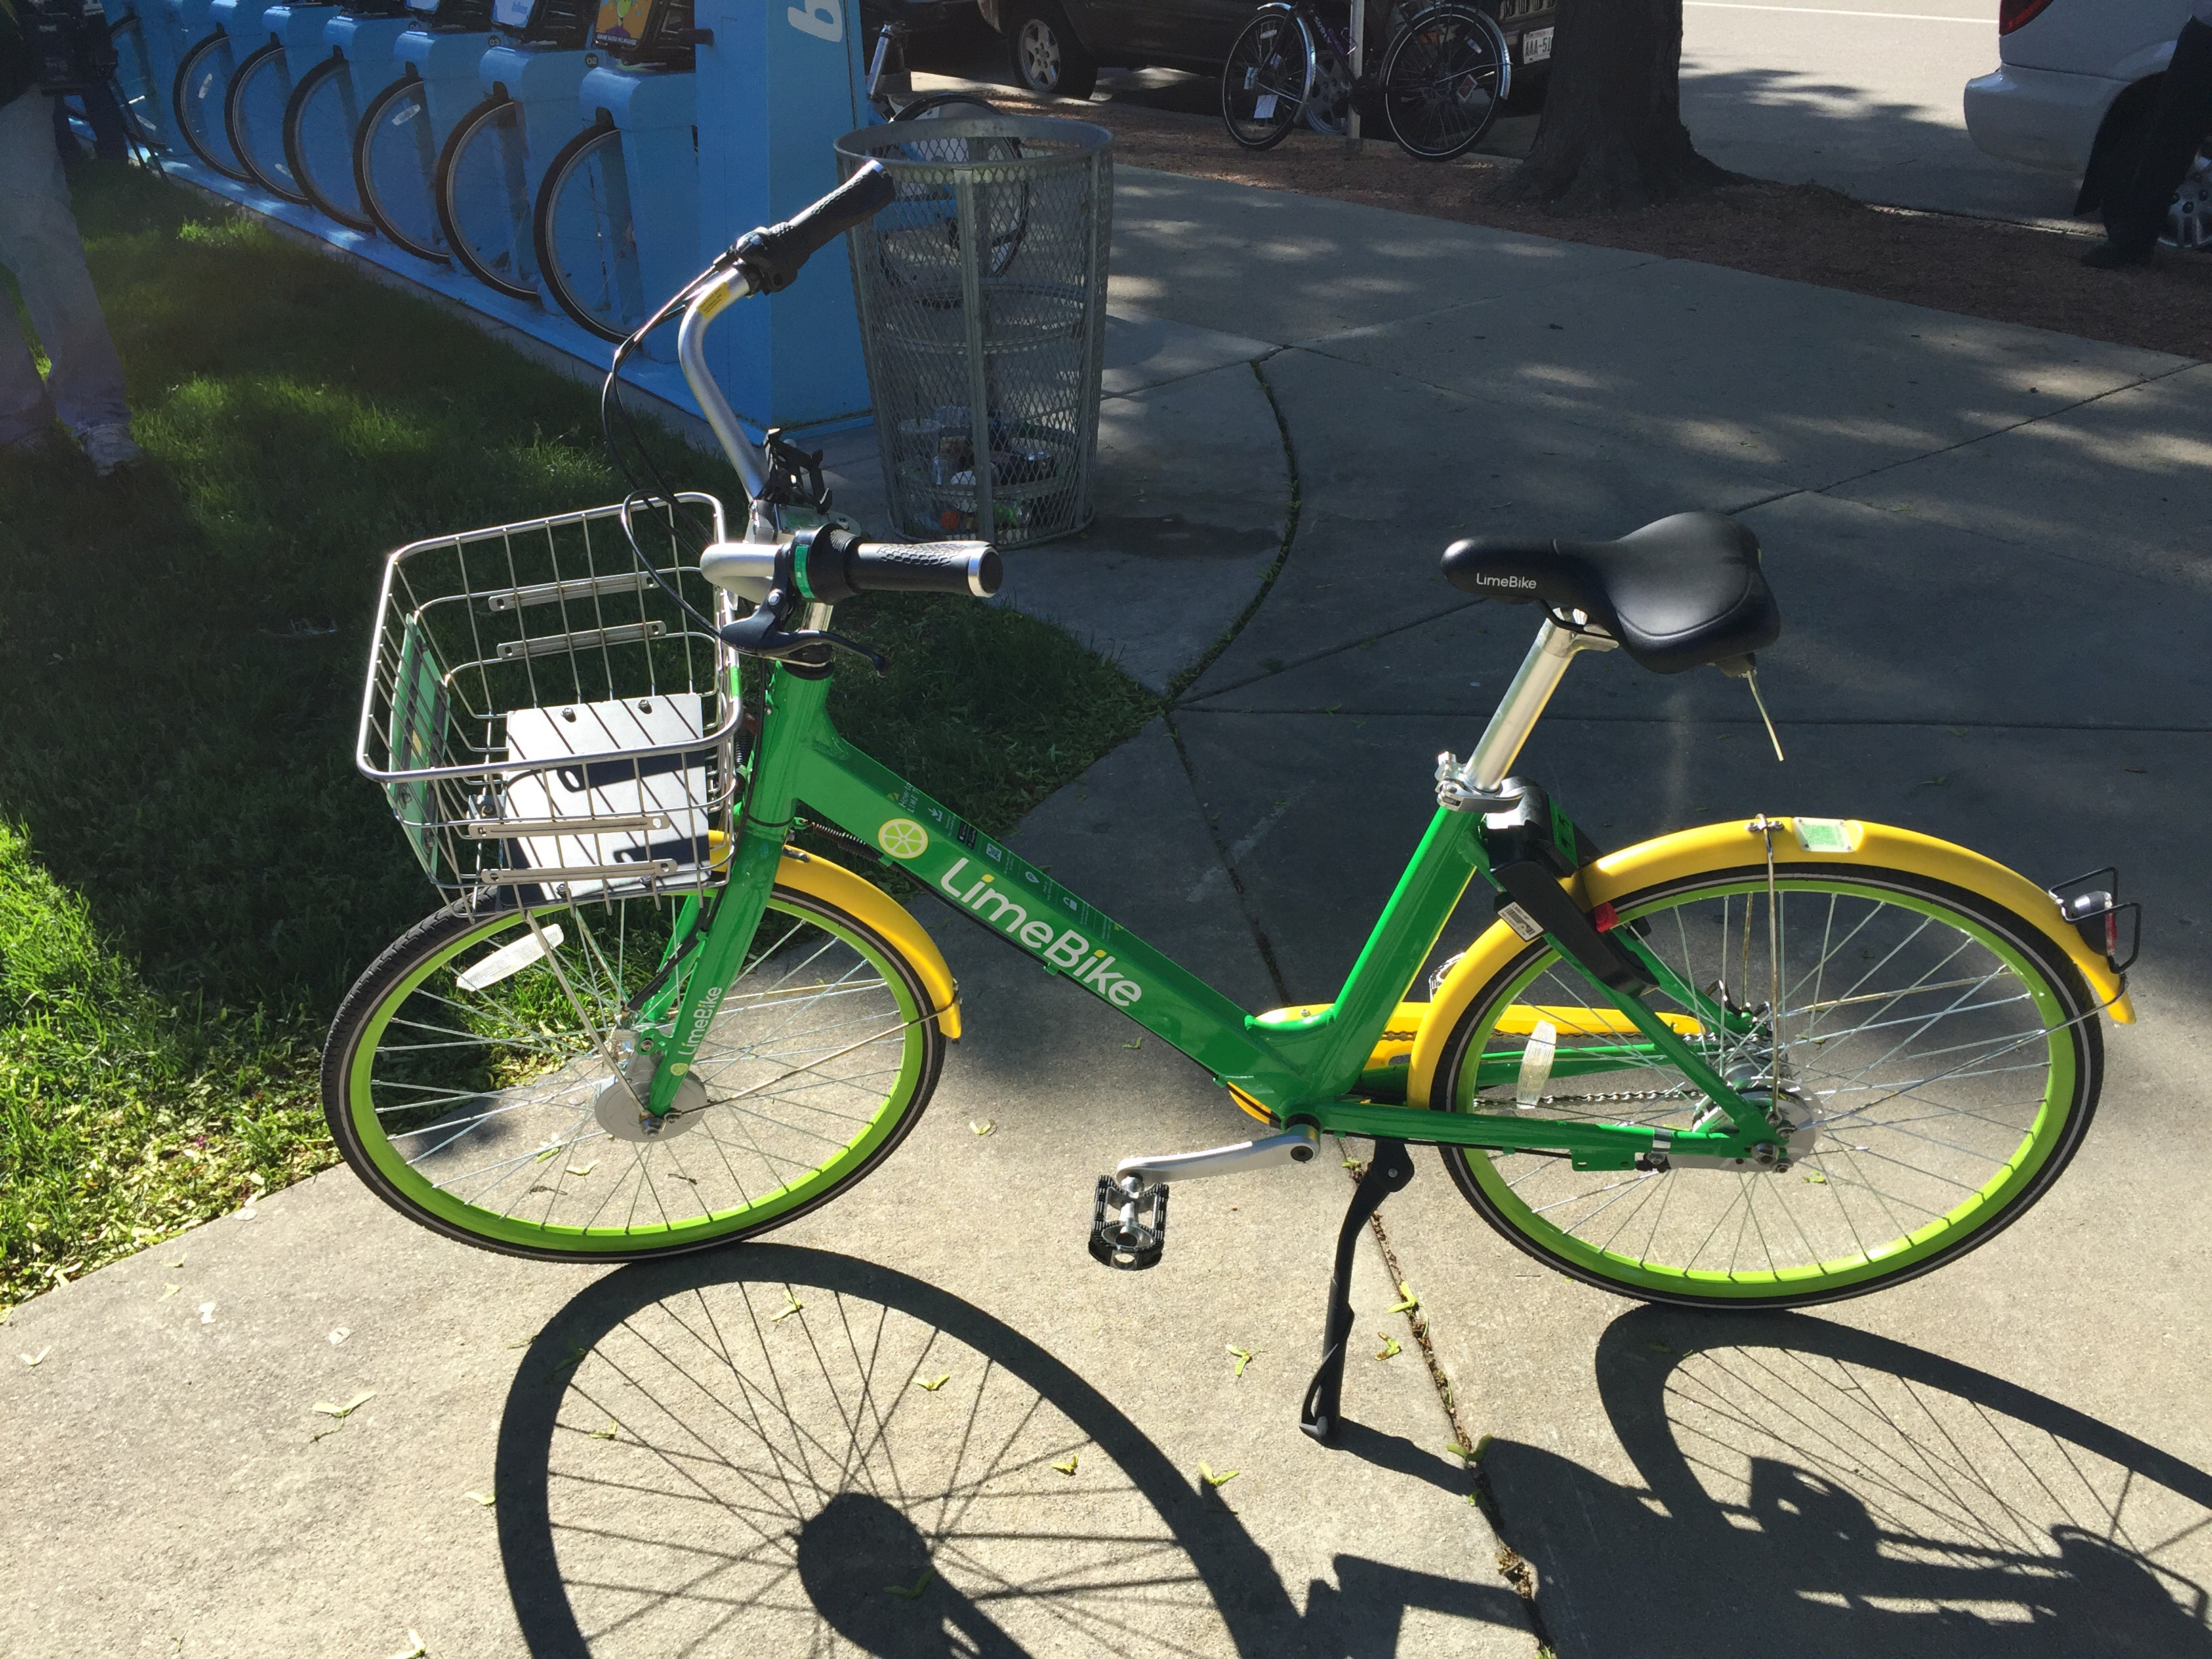 City of Milwaukee Department of Public Works Announces A Dockless Bicycle Share Pilot Study